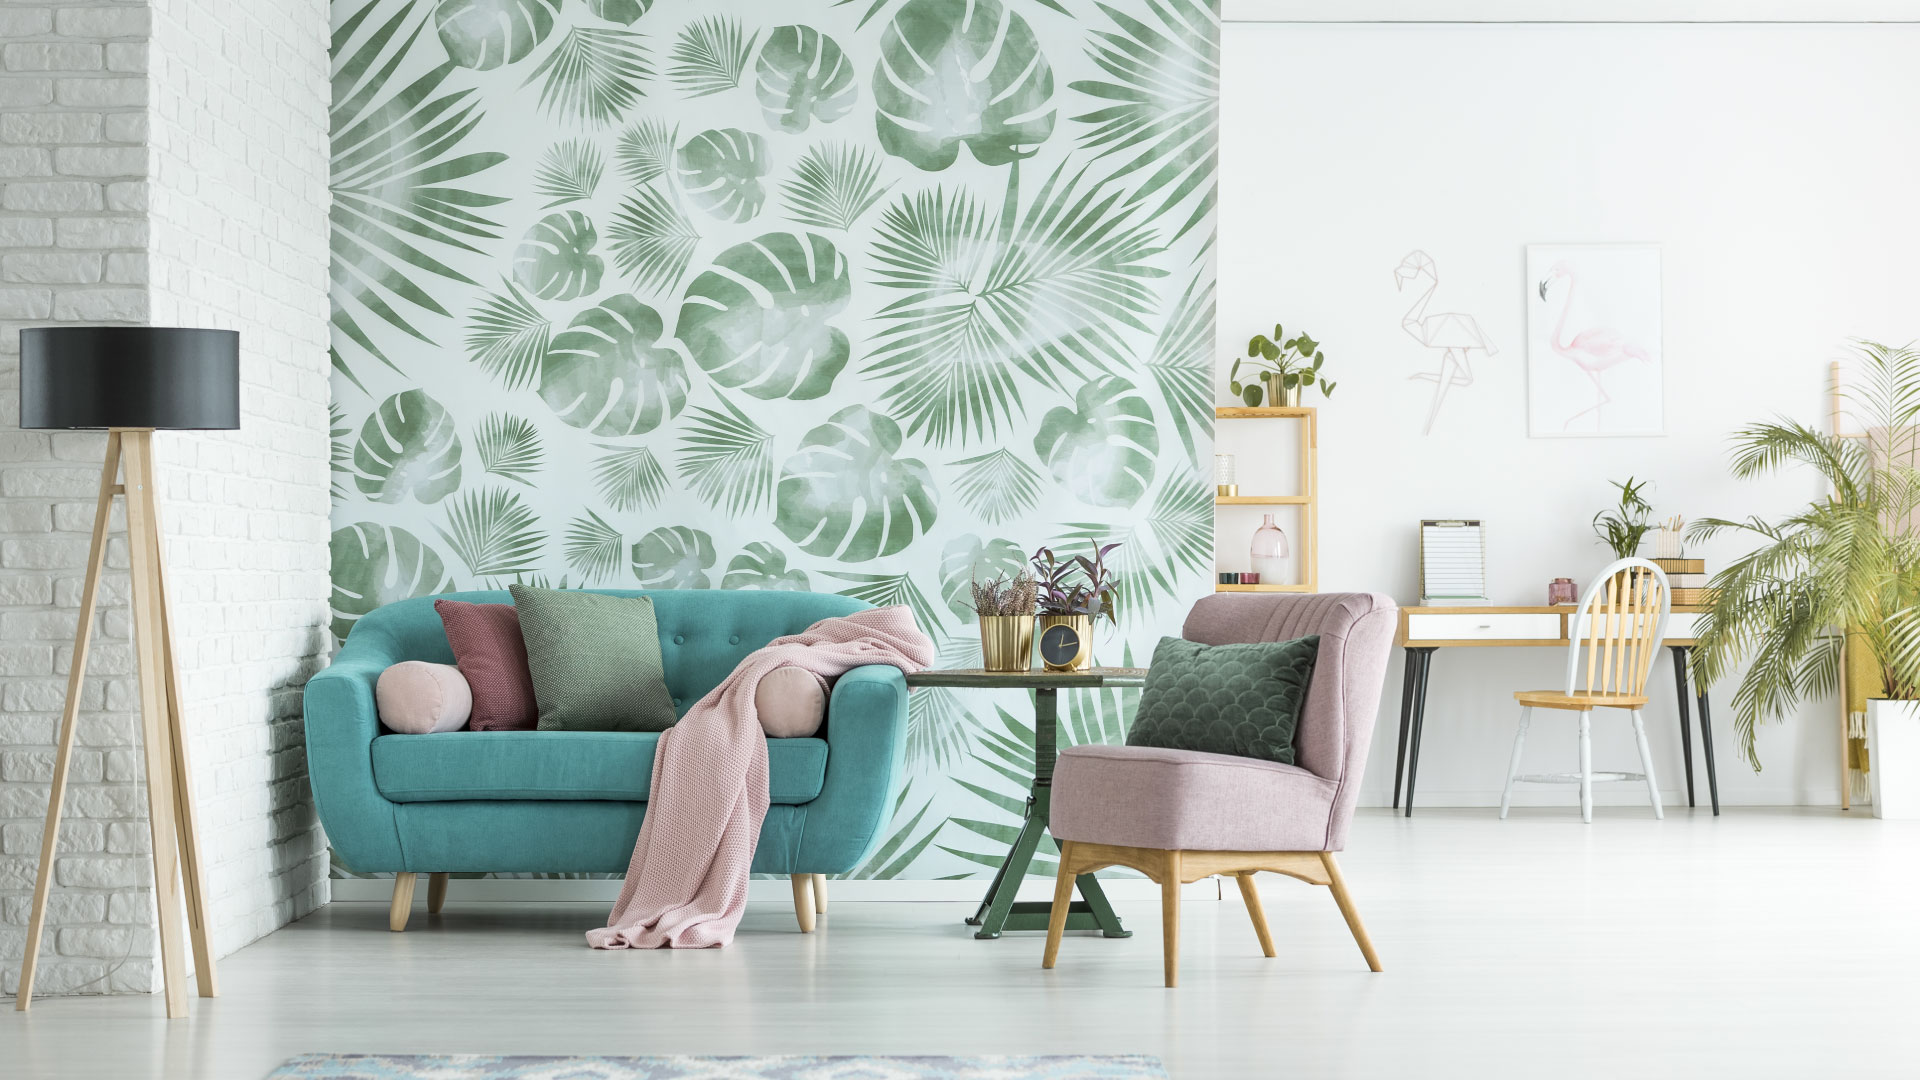 There Are Several Benefits To Using Wallpaper Over Simply Painting A Wall  In Your Home. Perhaps, The Most Obvious Benefit Of Using Wallpaper Is The  Huge ...